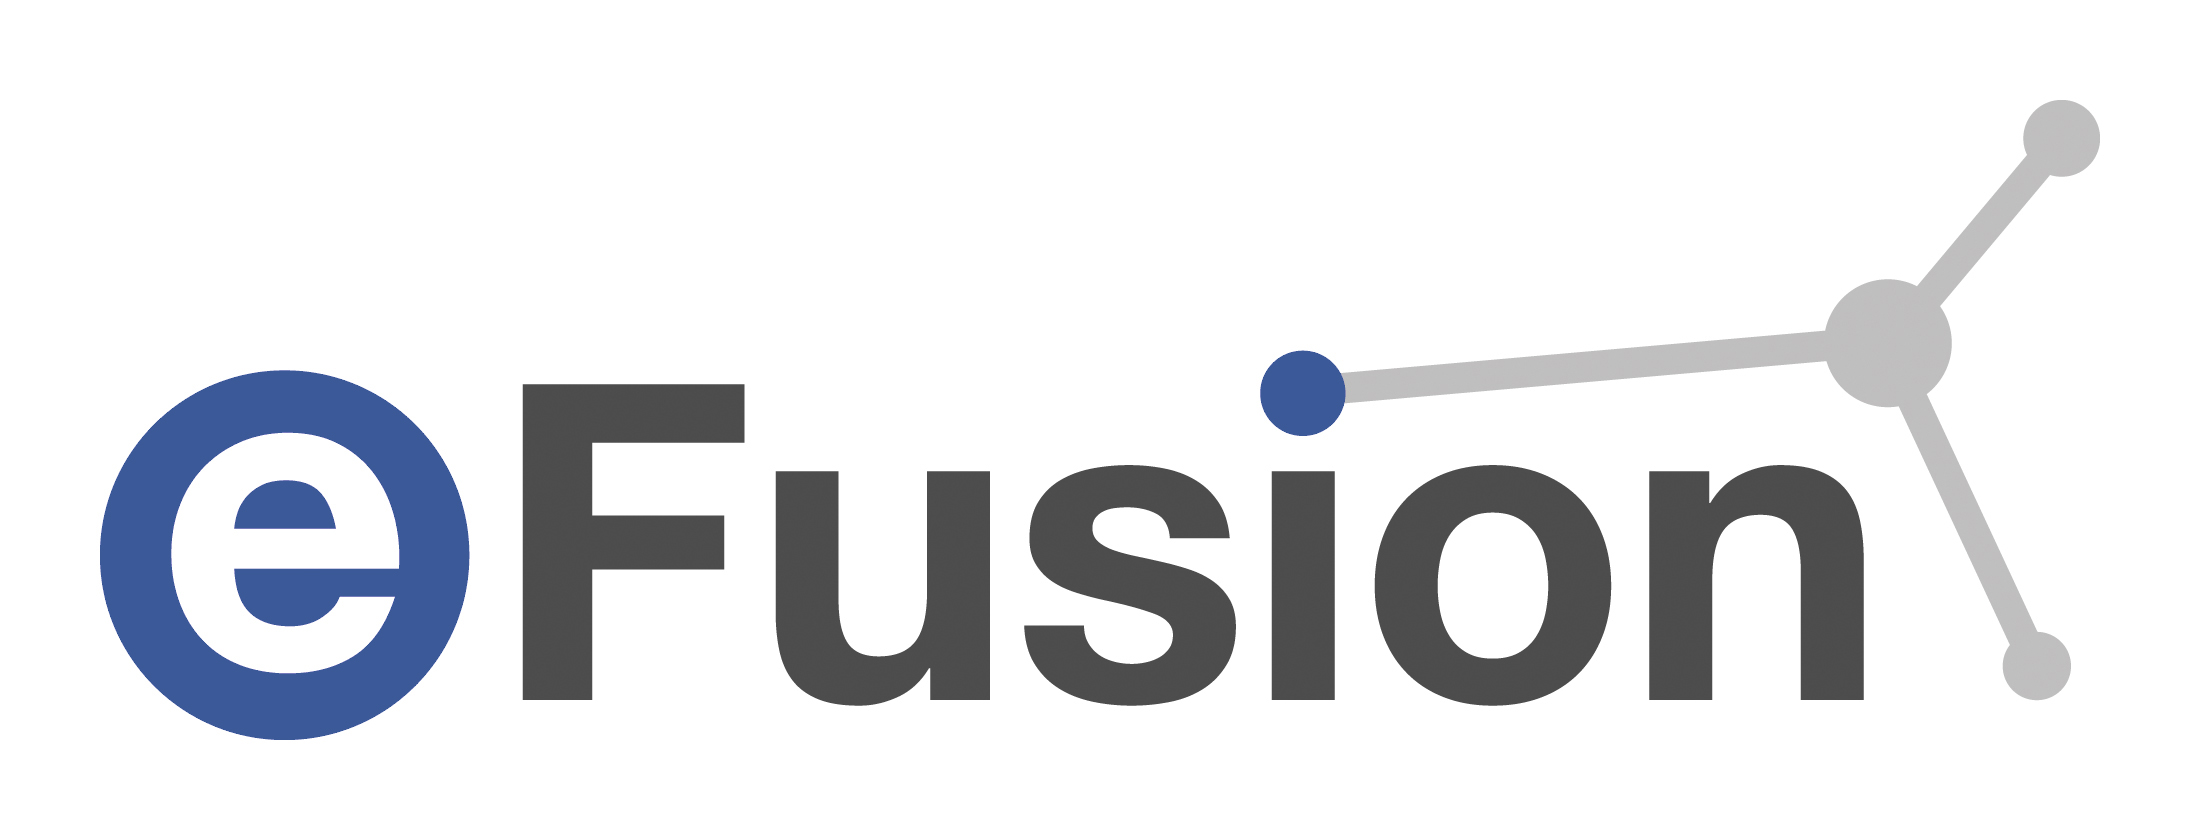 Maxxess eFusion security software logo